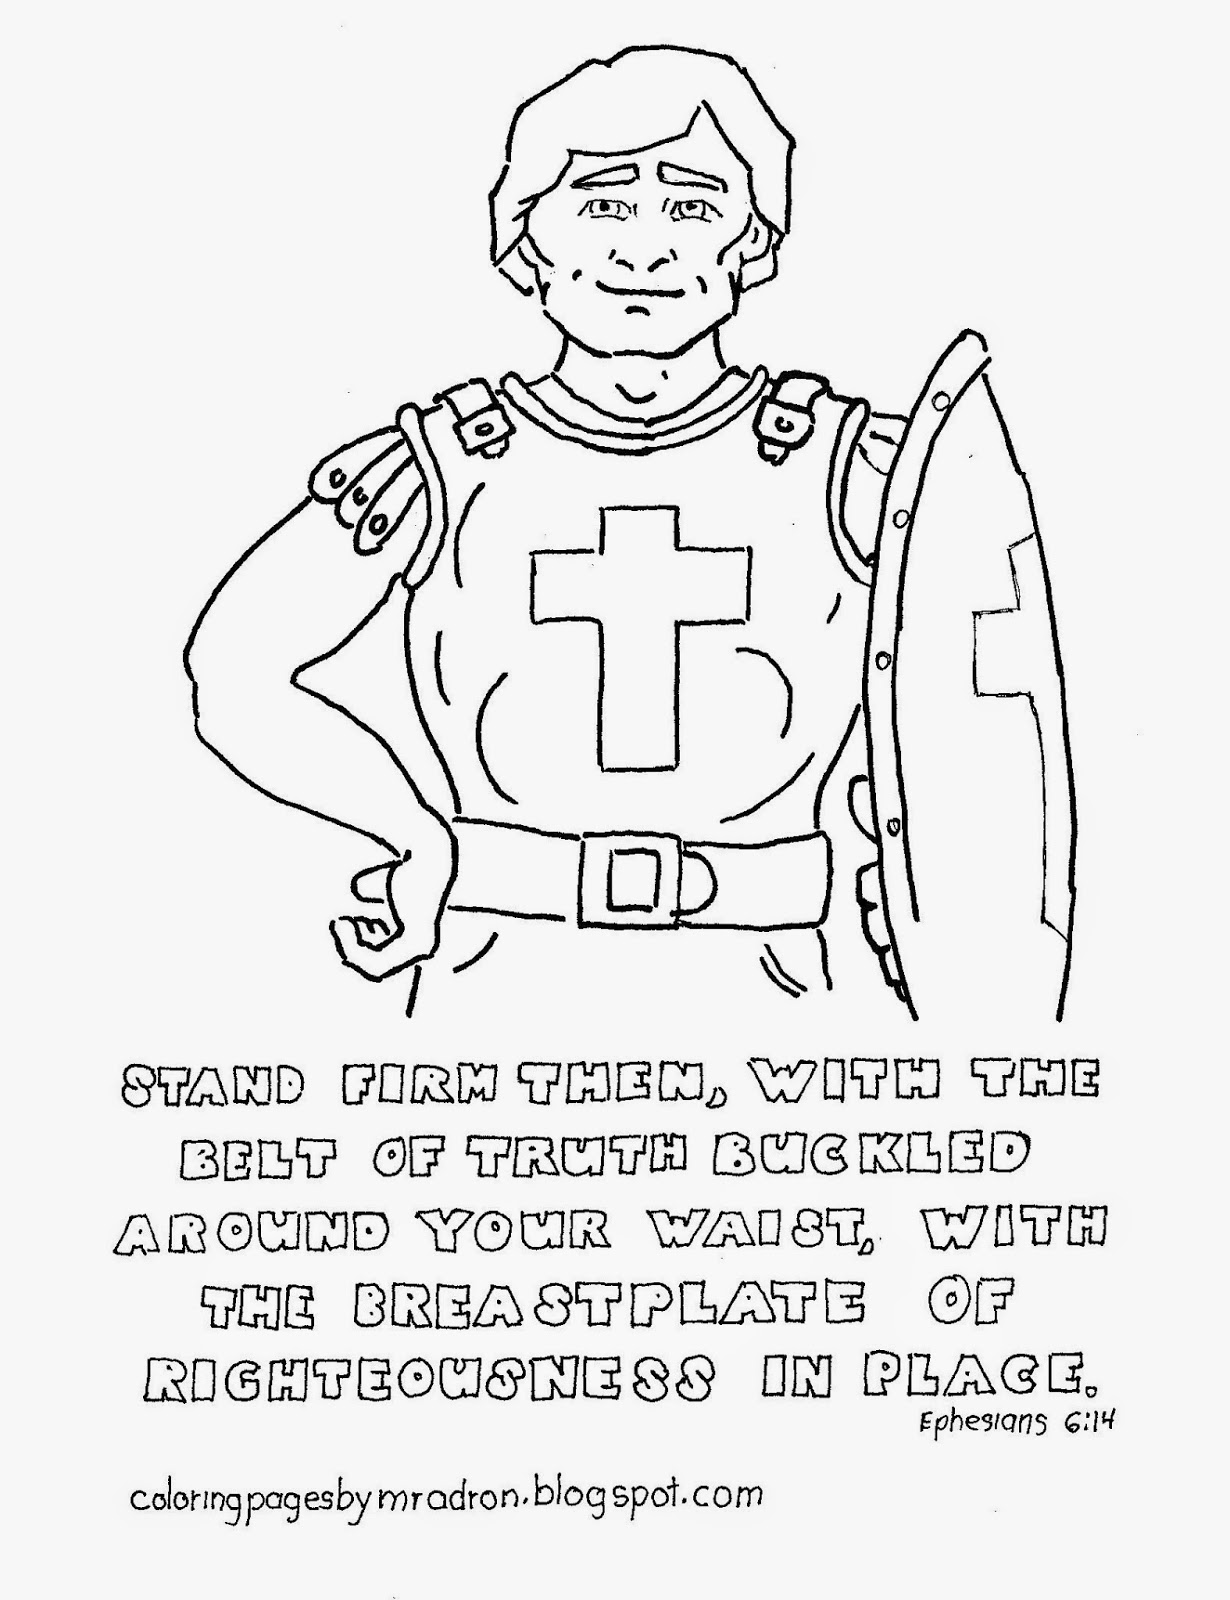 Coloring Pages for Kids by Mr Adron Breastplate of Righteousness